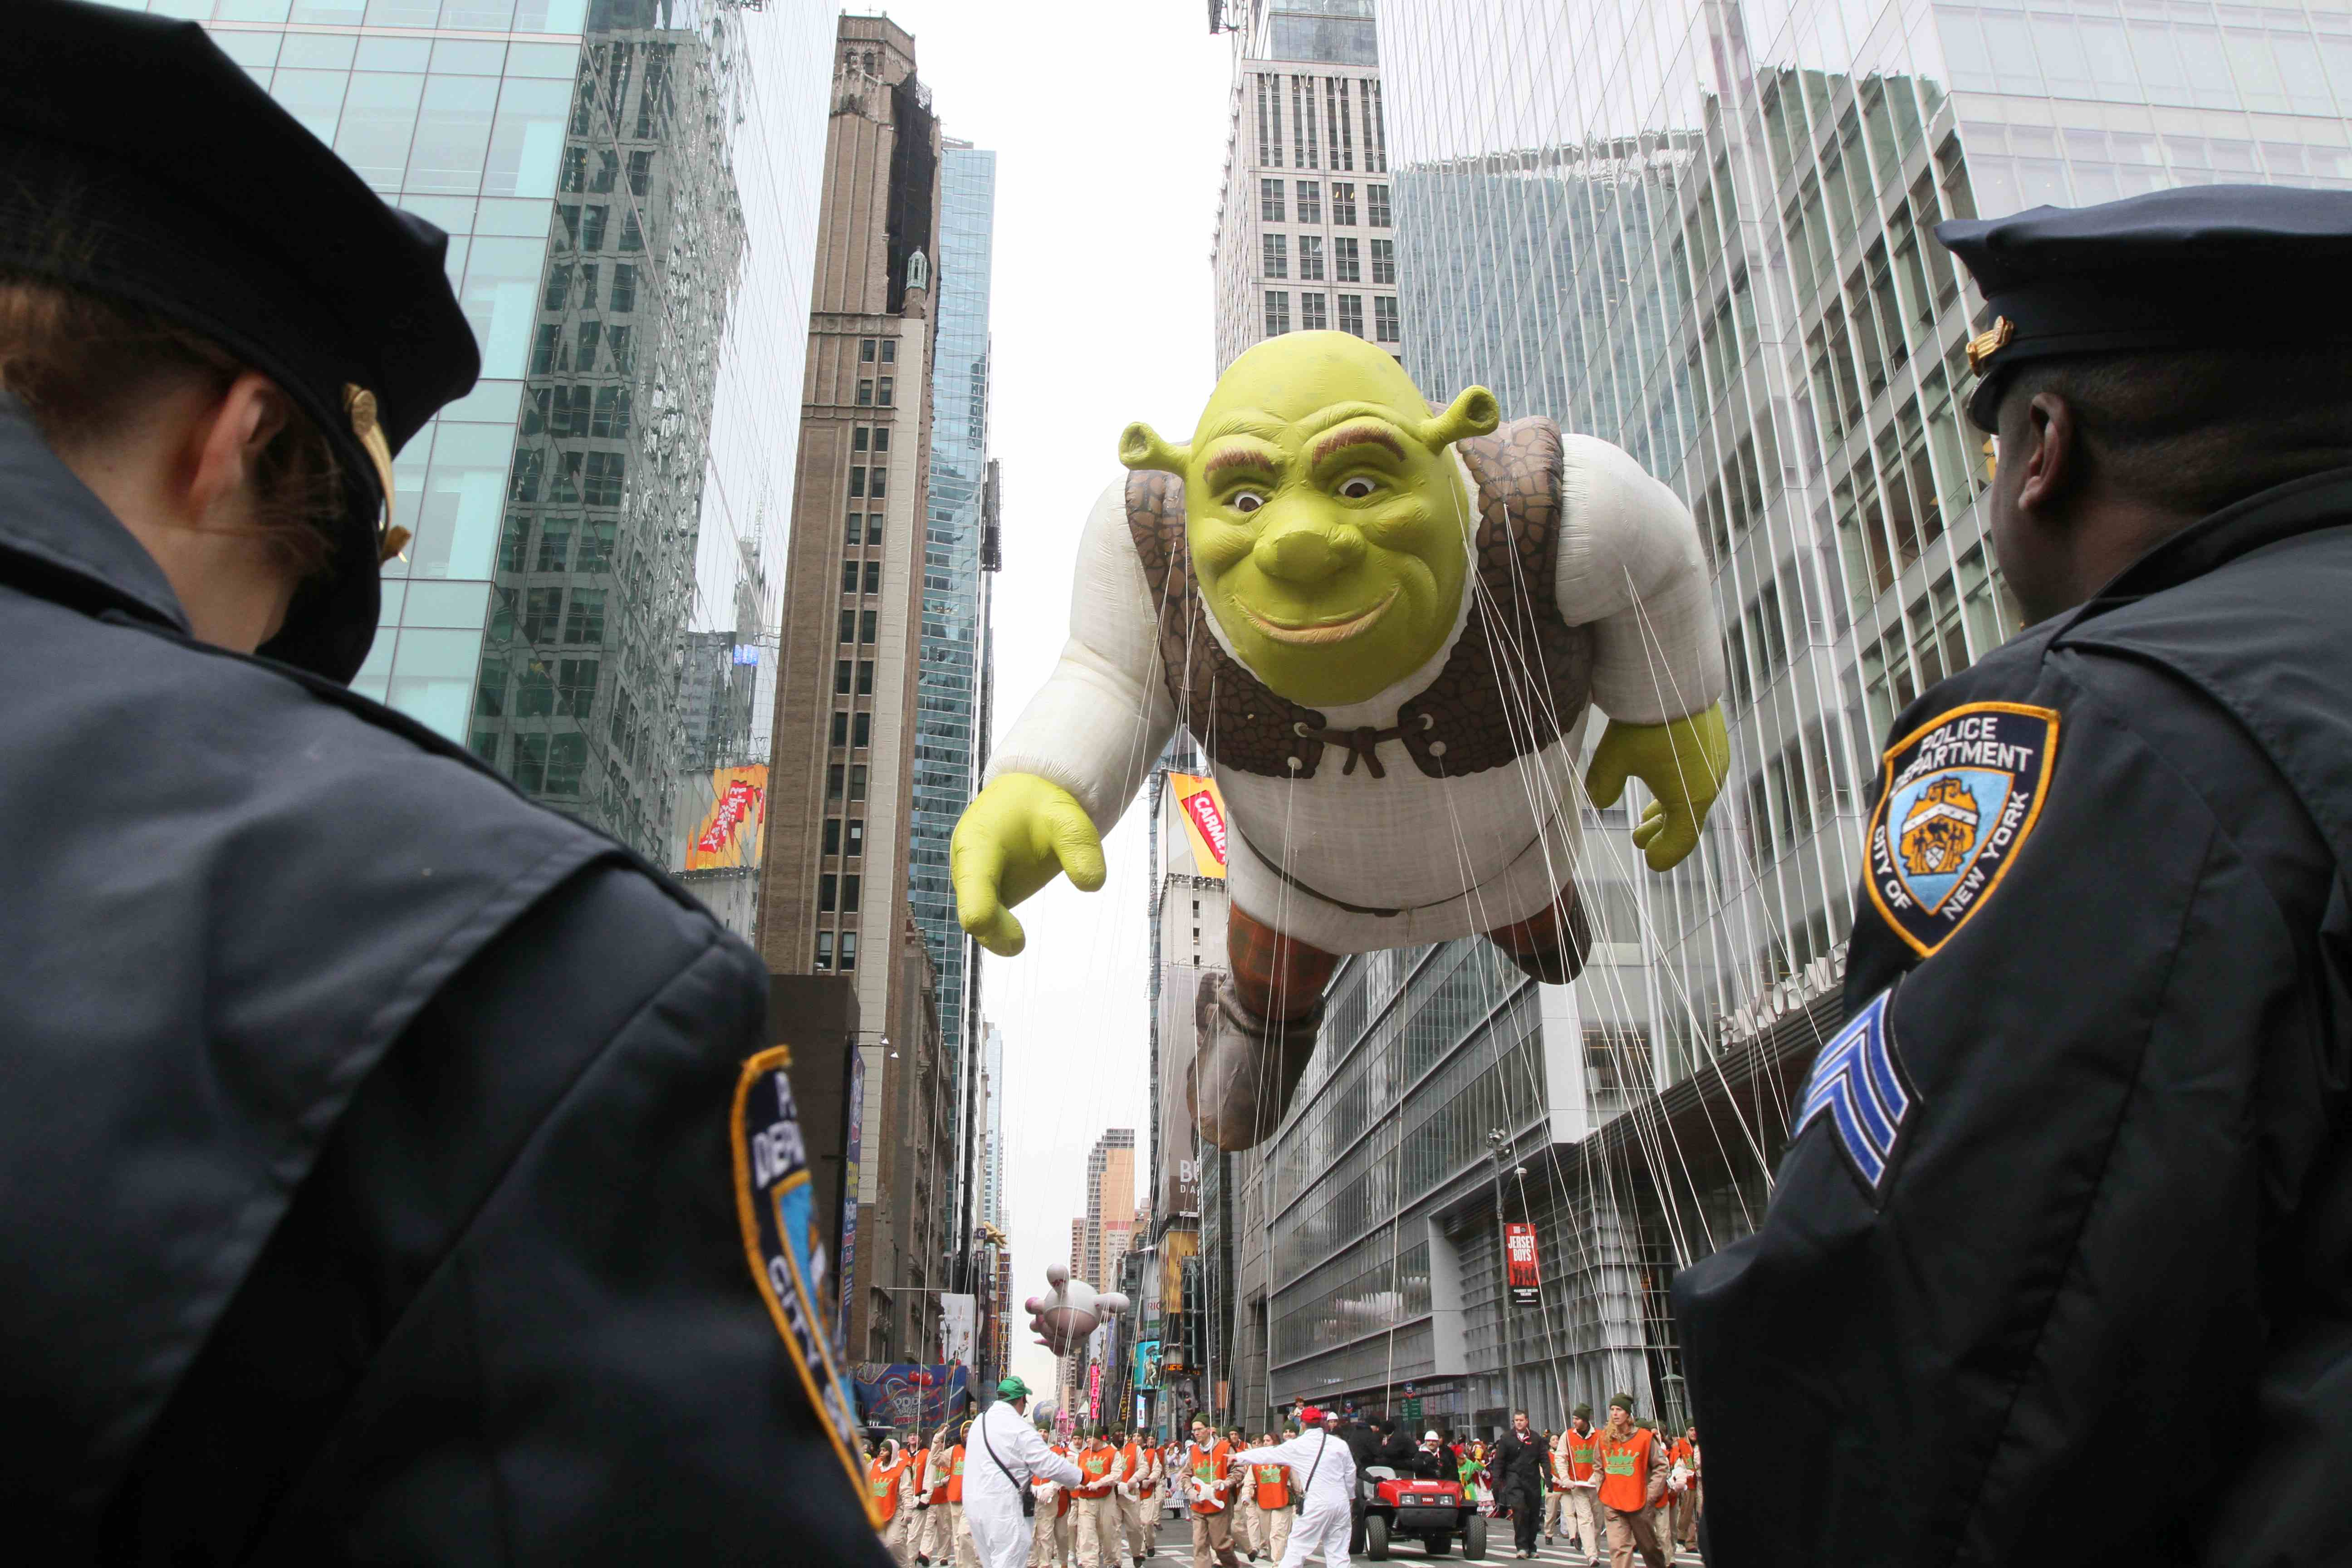 Members of the New York Police Department stand by as the Shrek balloon at the Macy's Thanksgiving Day Parade.